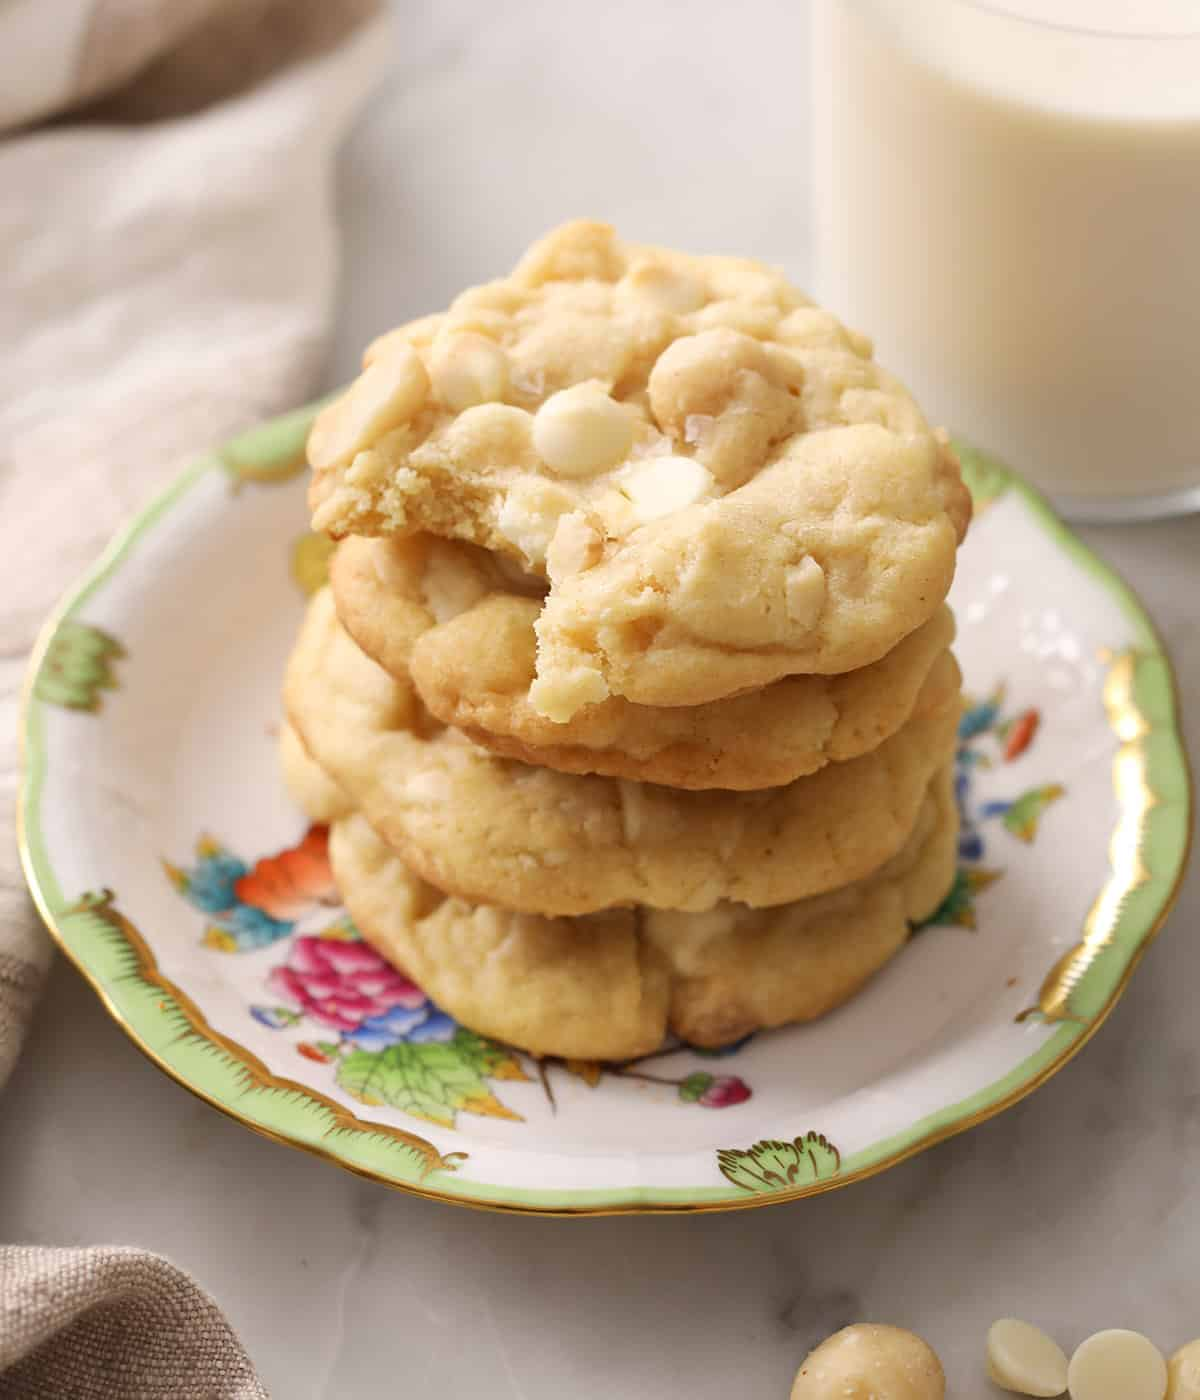 Two white chocolate macadamia nut cookies on a porcelain plate next to a glass of milk.